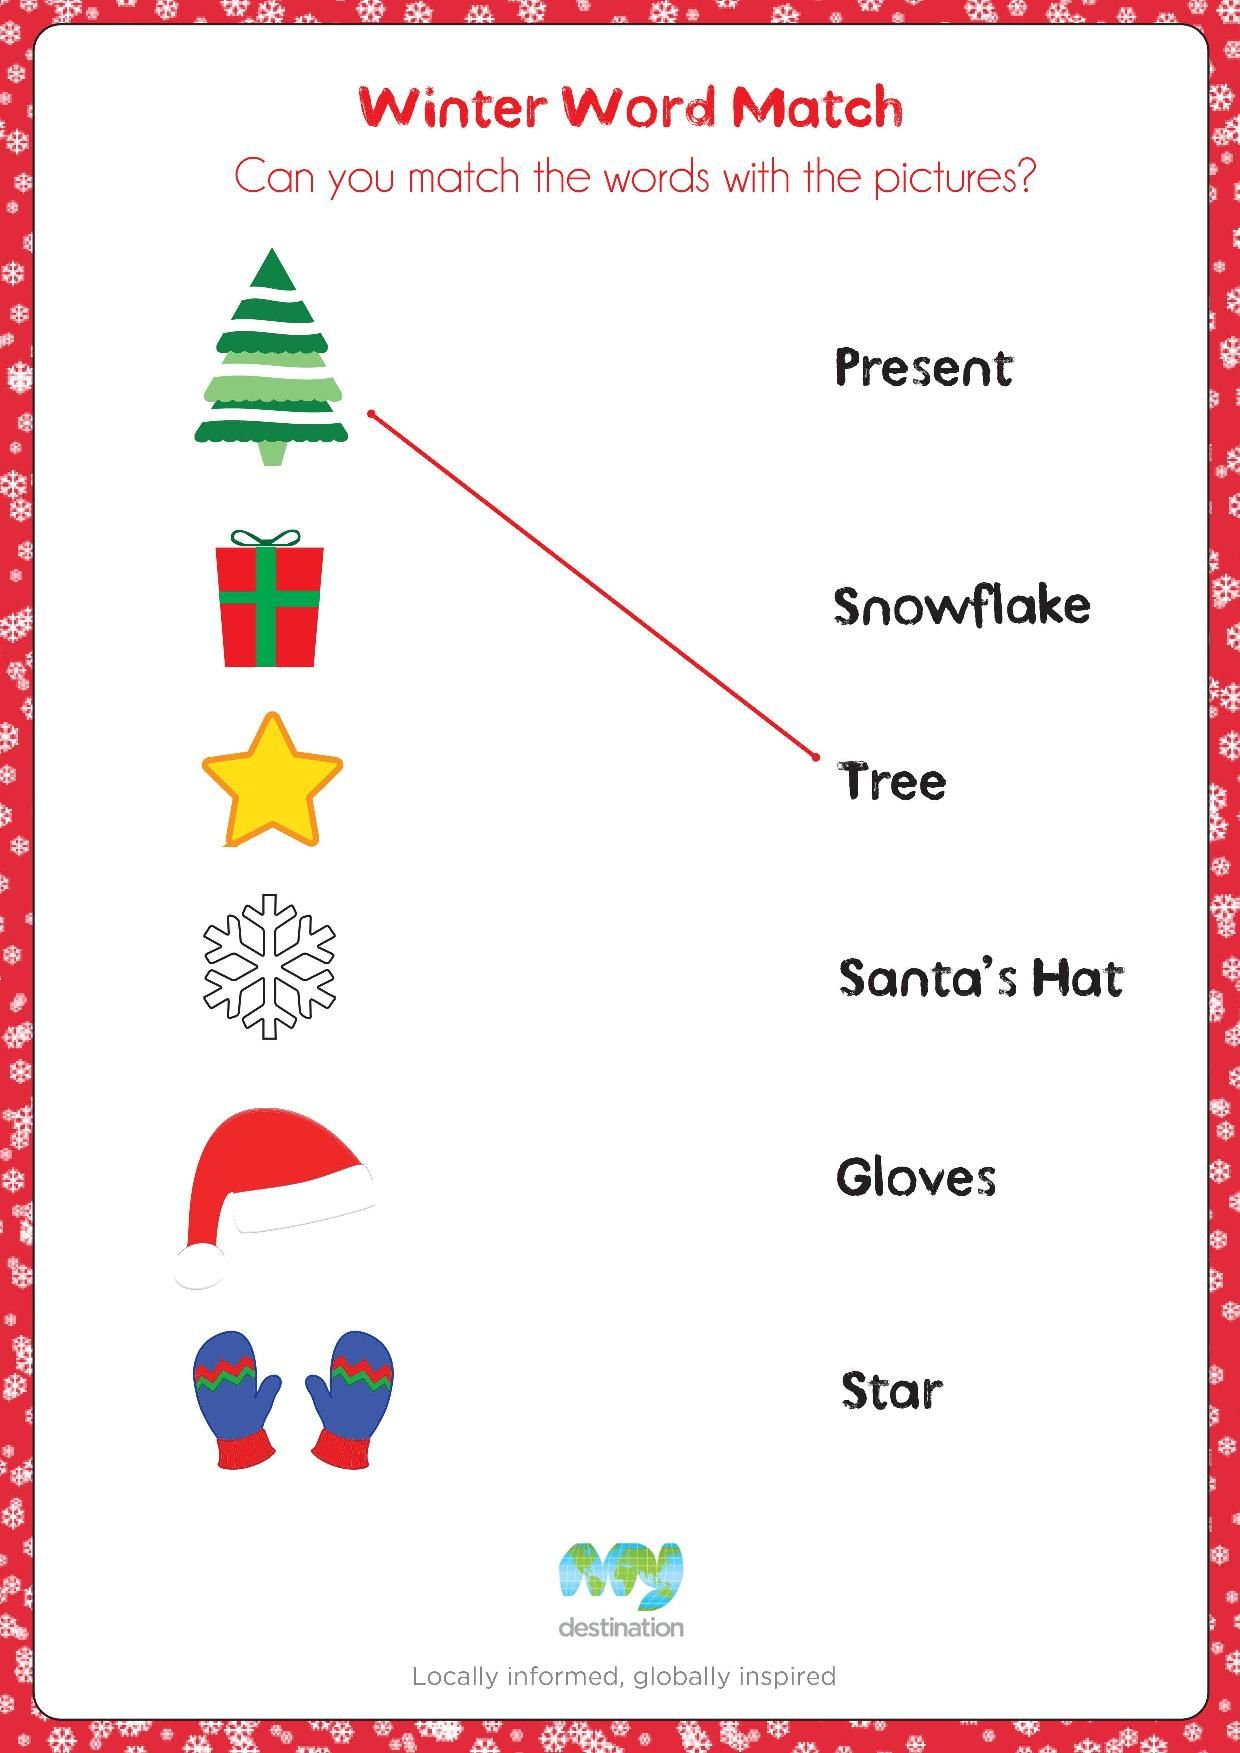 Winter Word Match. Download this puzzle for free at the